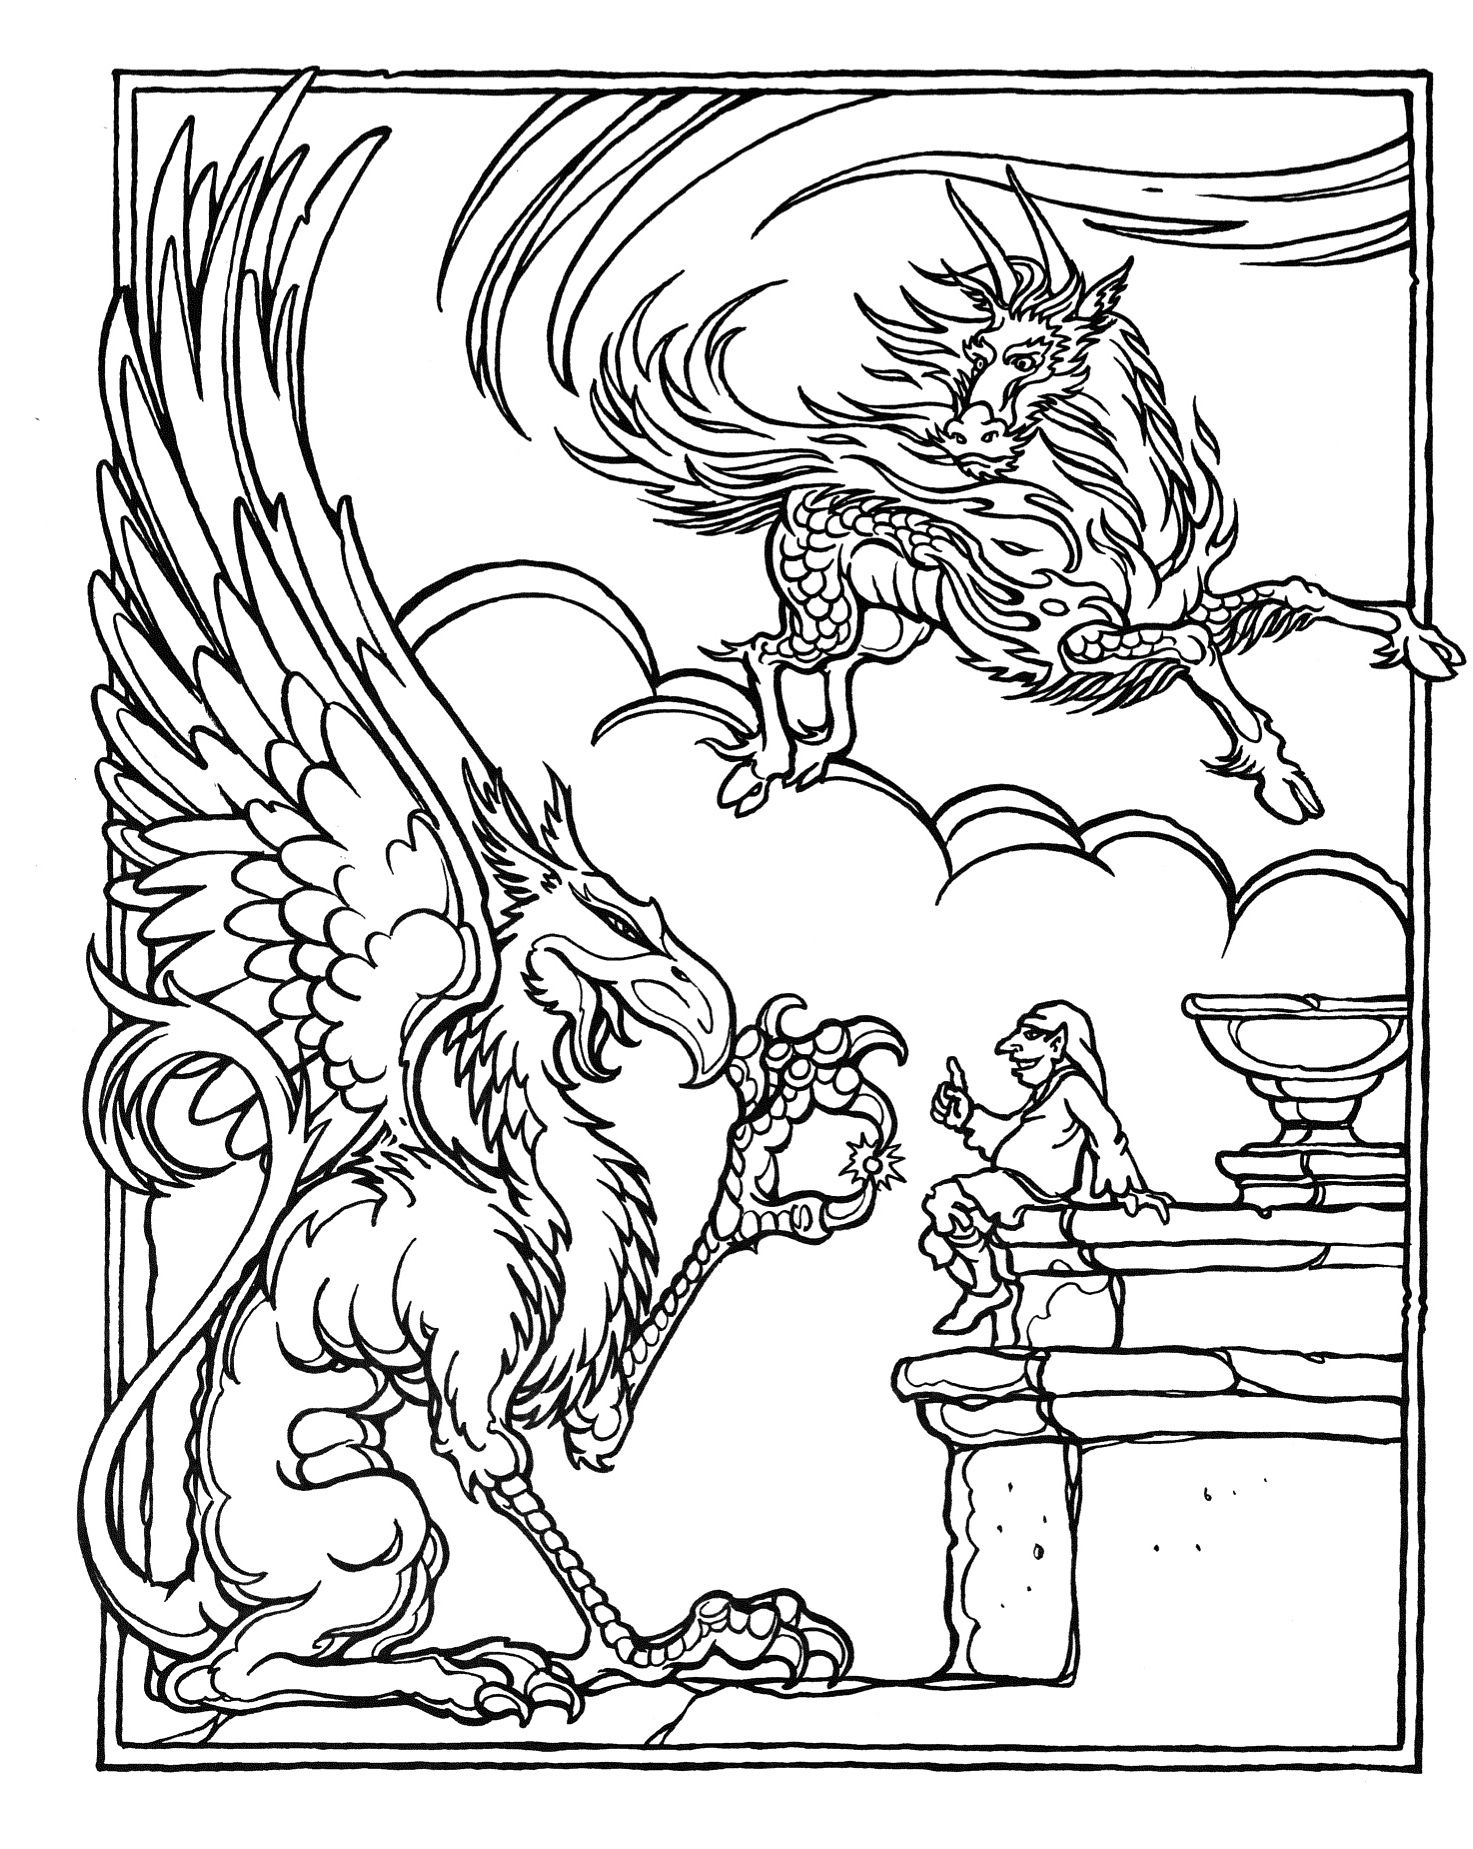 dragon gets by coloring pages - photo#26